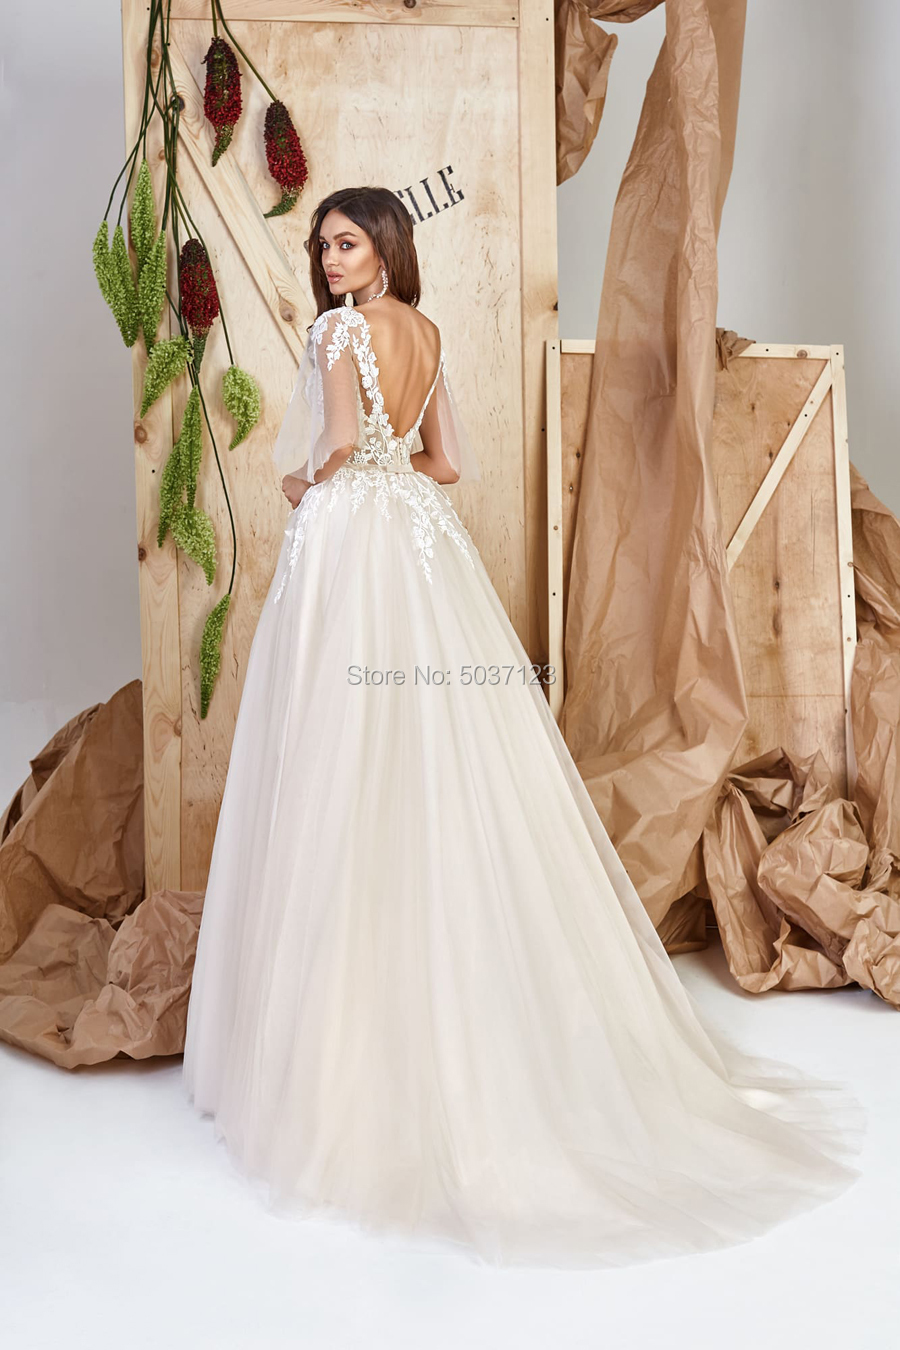 Image 2 - Half Sleeves Wedding Dresses Lace Appliques Scoop Open Back Floor Length Court Train Tulle Vestido De Noiva Bridal Wedding Gown-in Wedding Dresses from Weddings & Events